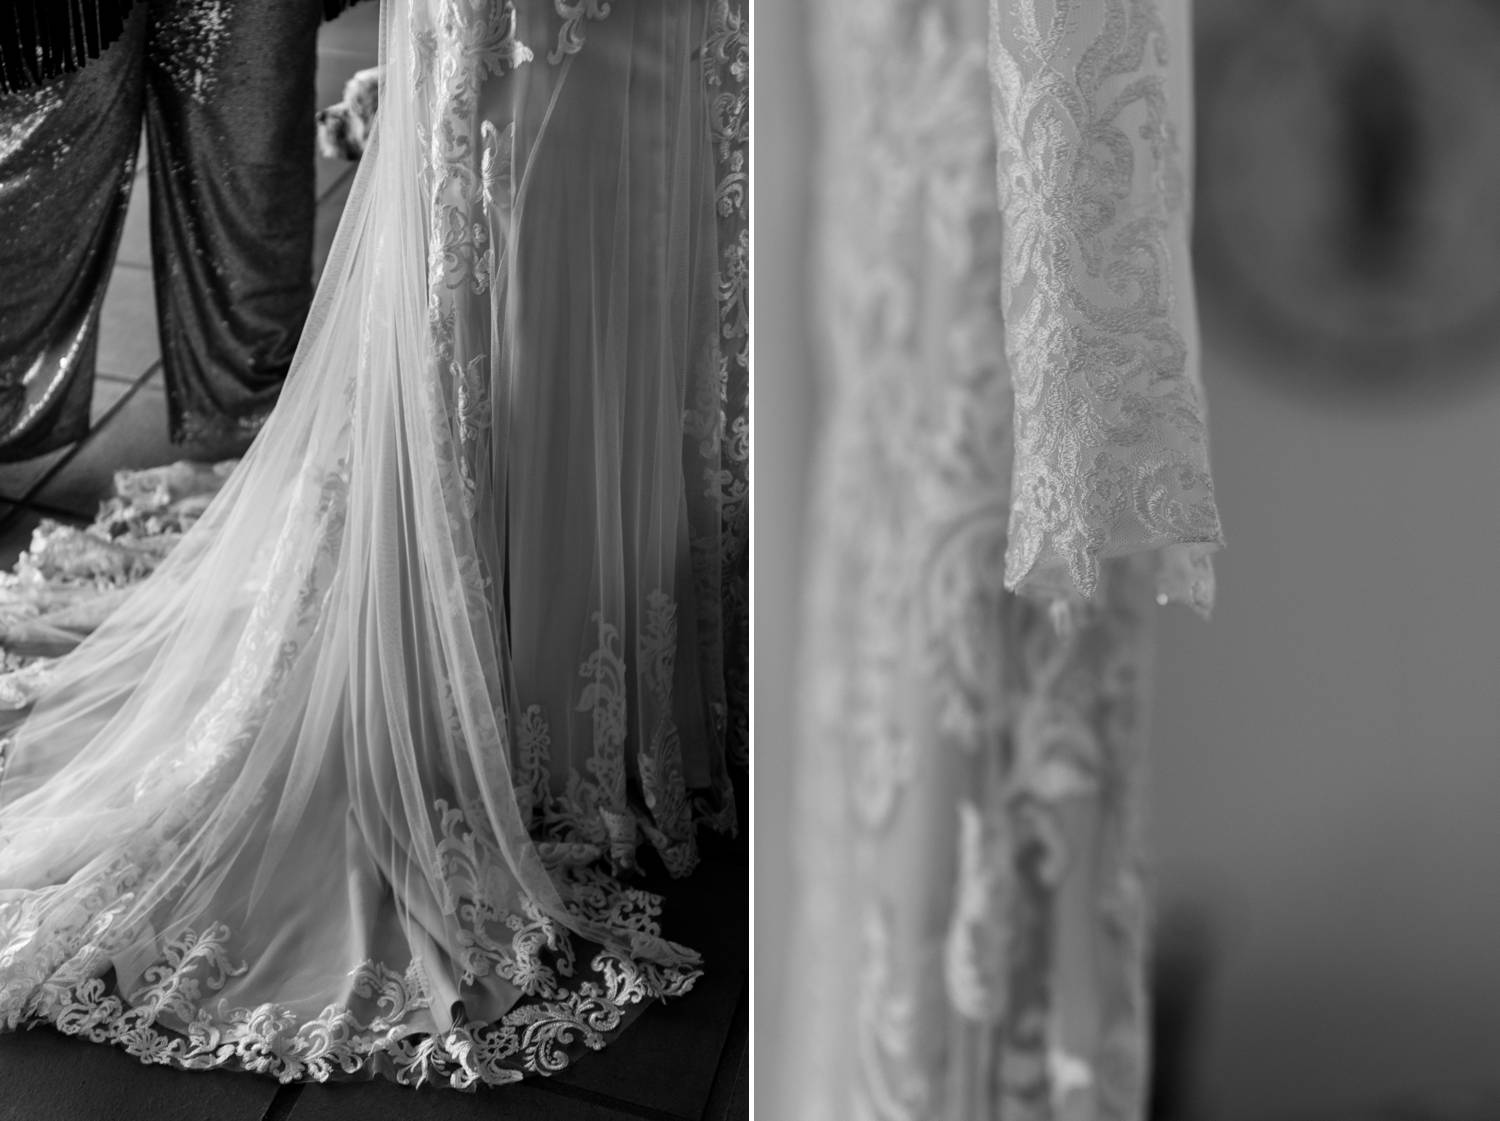 Lace Wedding dress close up